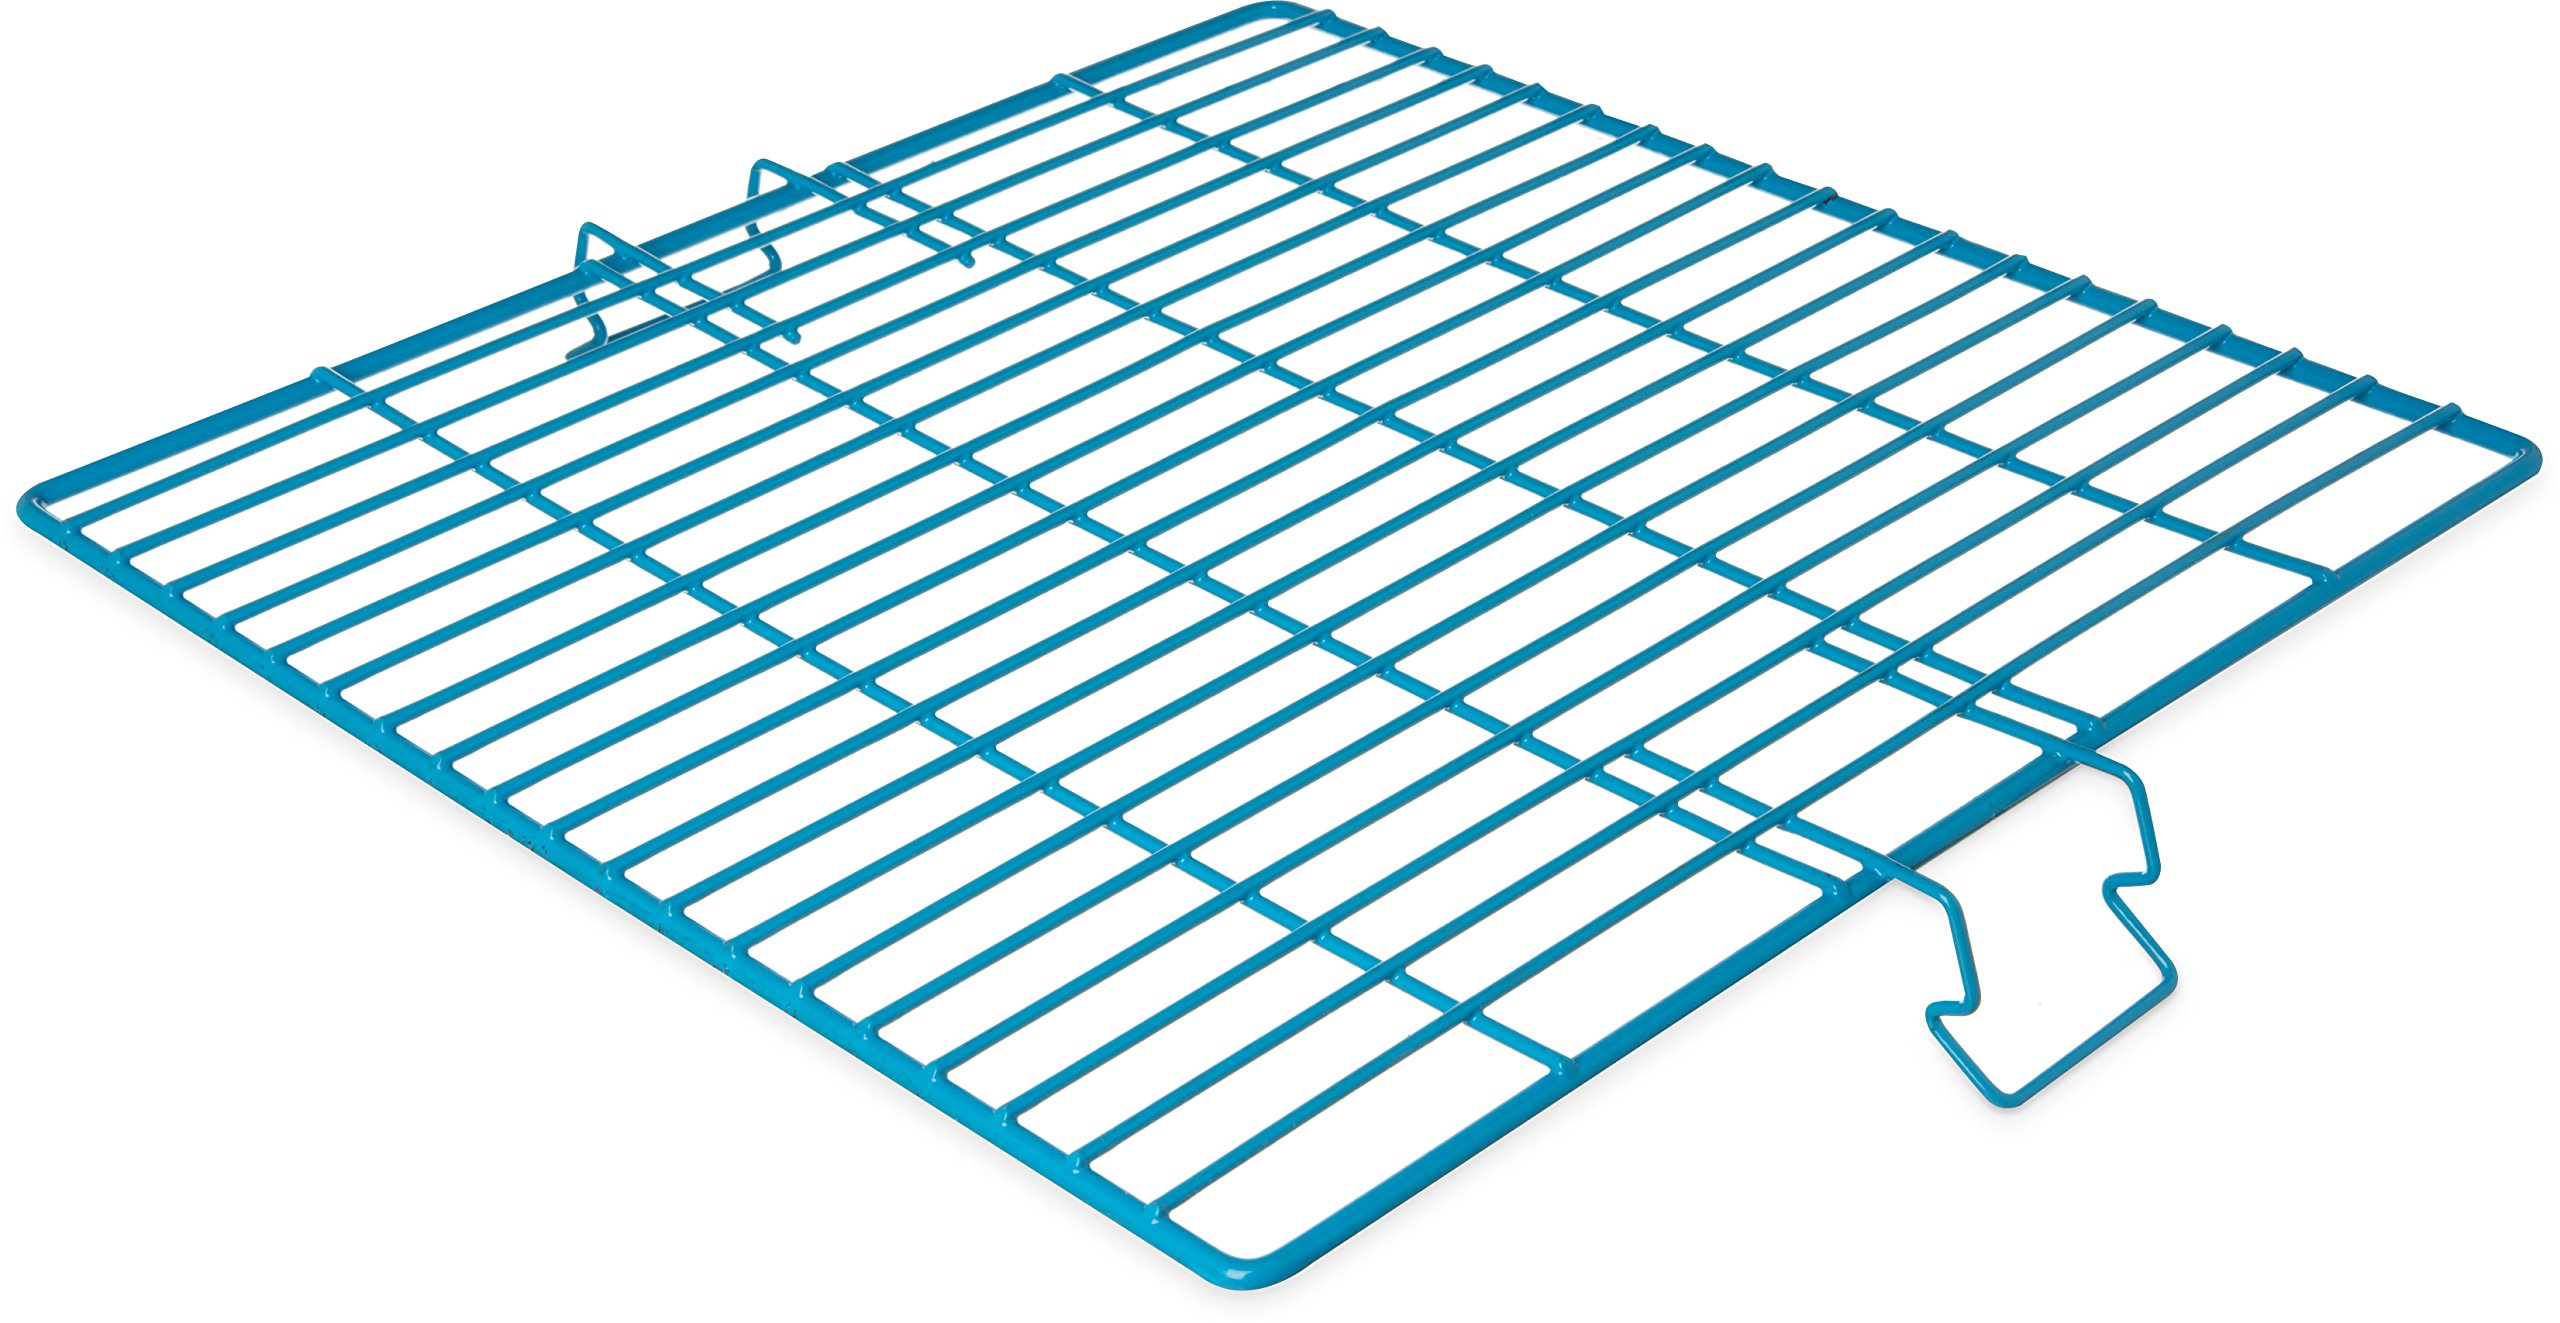 Carlisle C9314 OptiClean Vinyl-Coated Stainless Steel Wire Hold-Down Grid, 17-7/8'' L x 17-7/8'' W x 19/64'' H, Carlisle Blue (Case of 6)